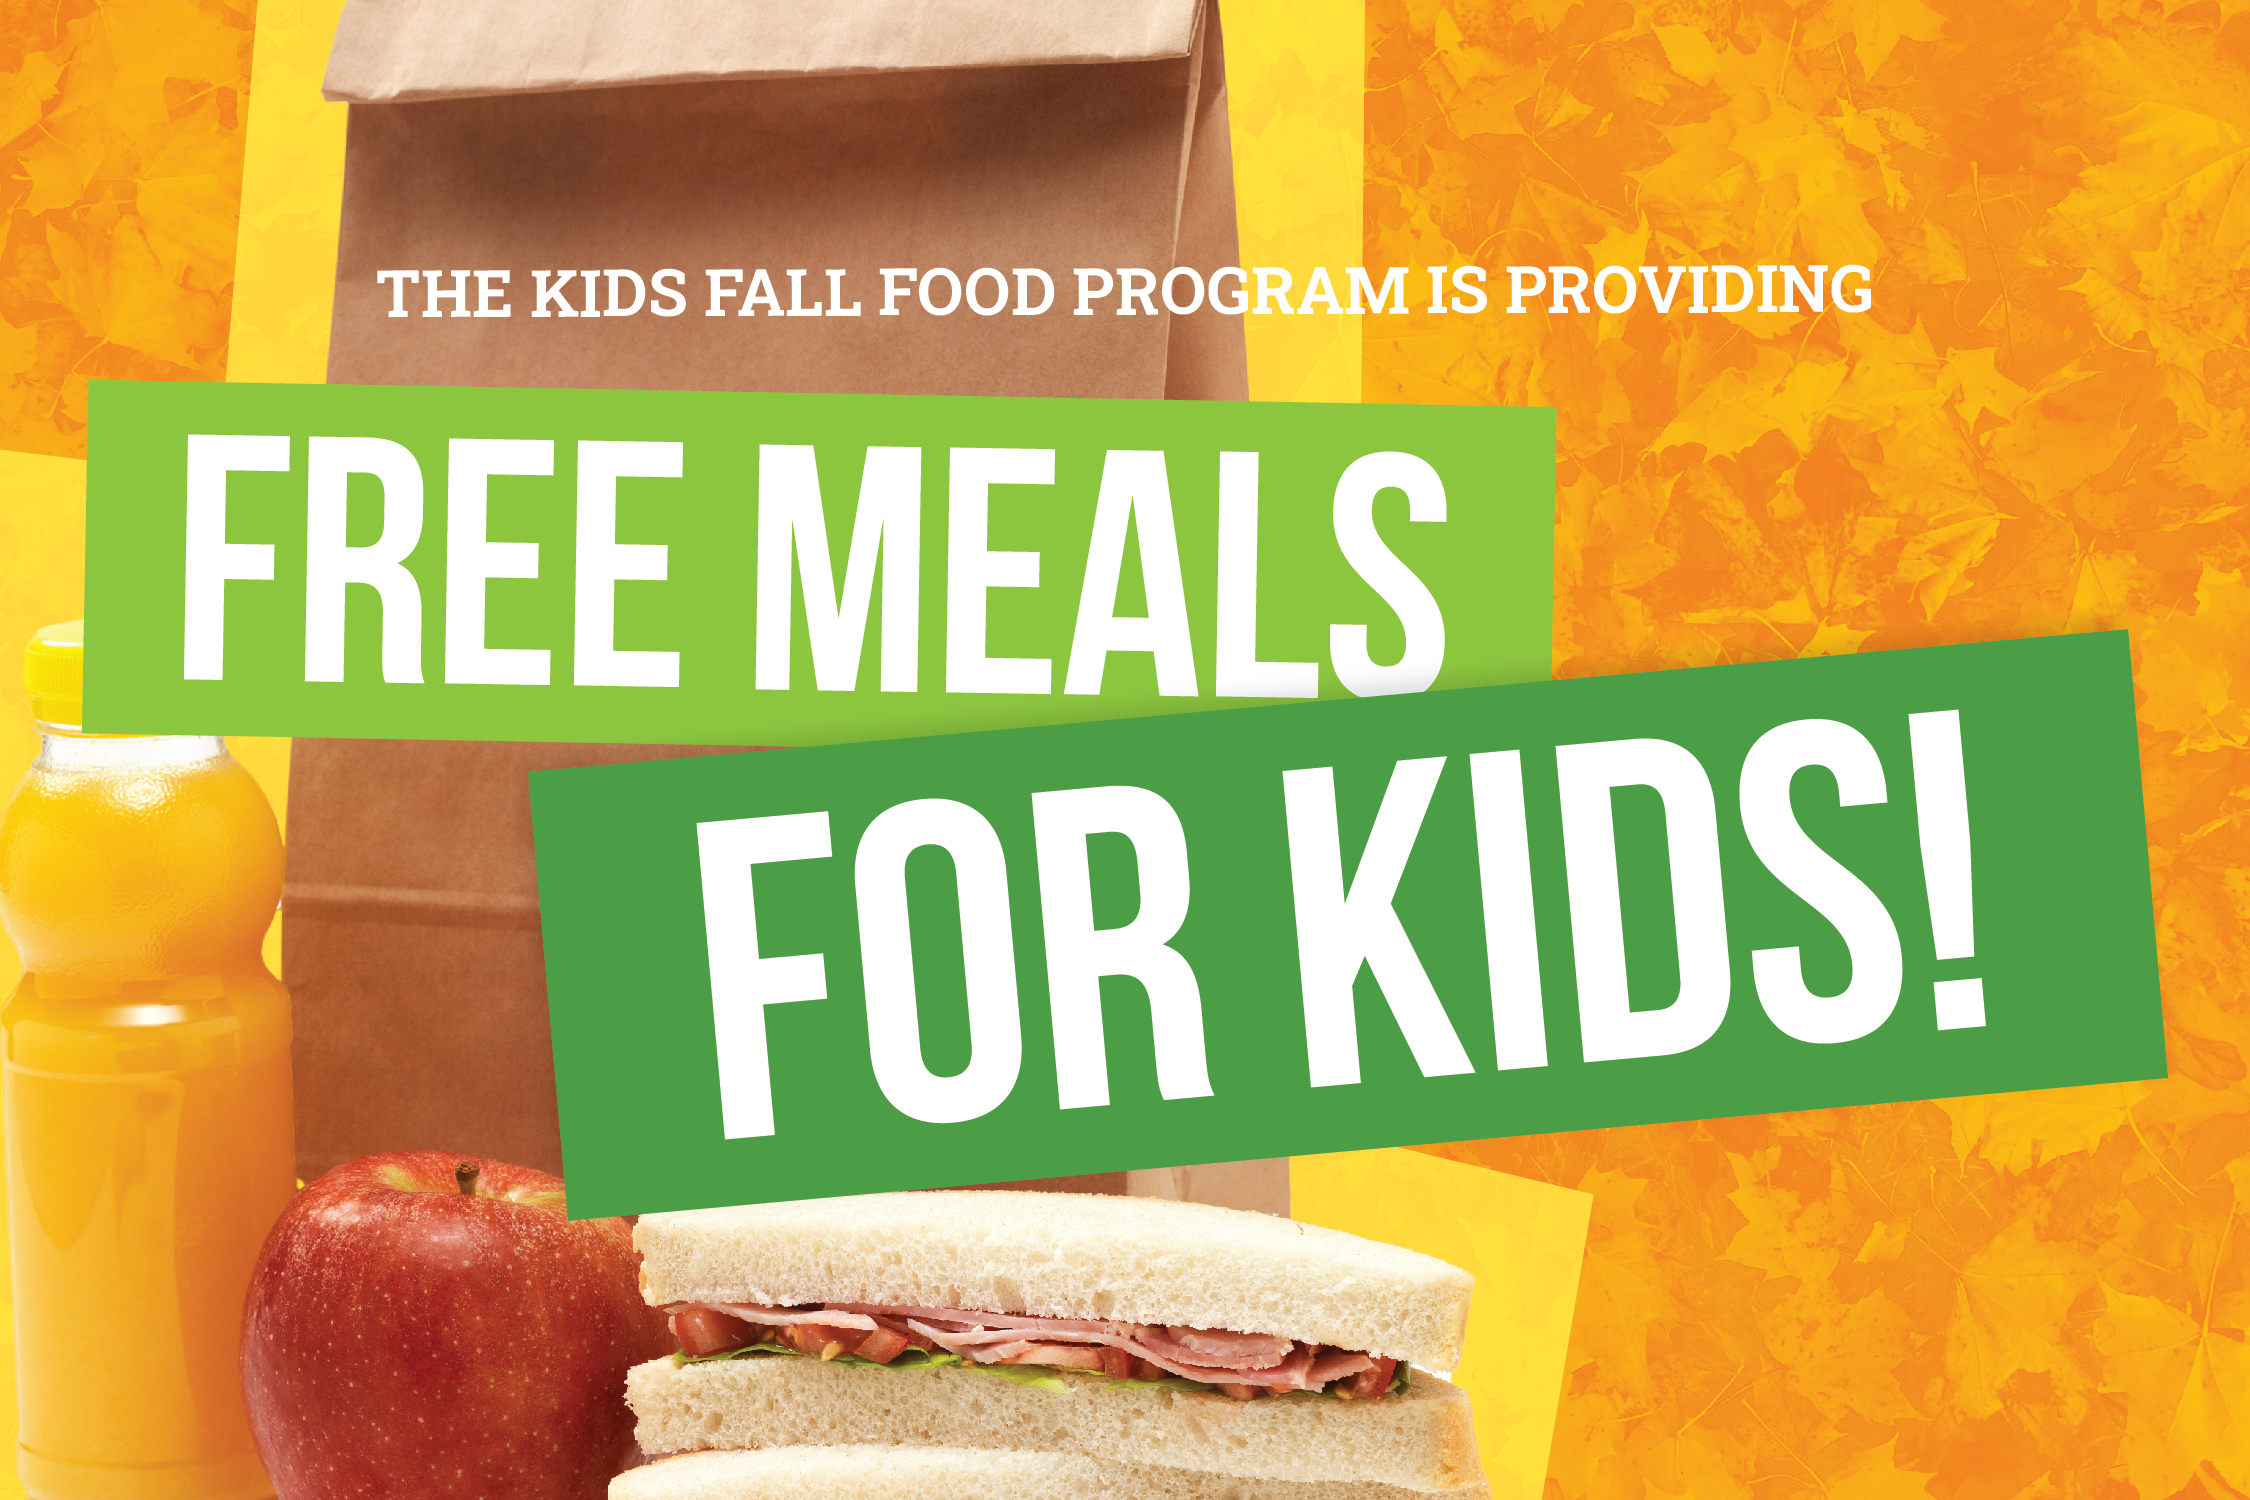 The Kids Fall Food Program is providing free meals for kids!